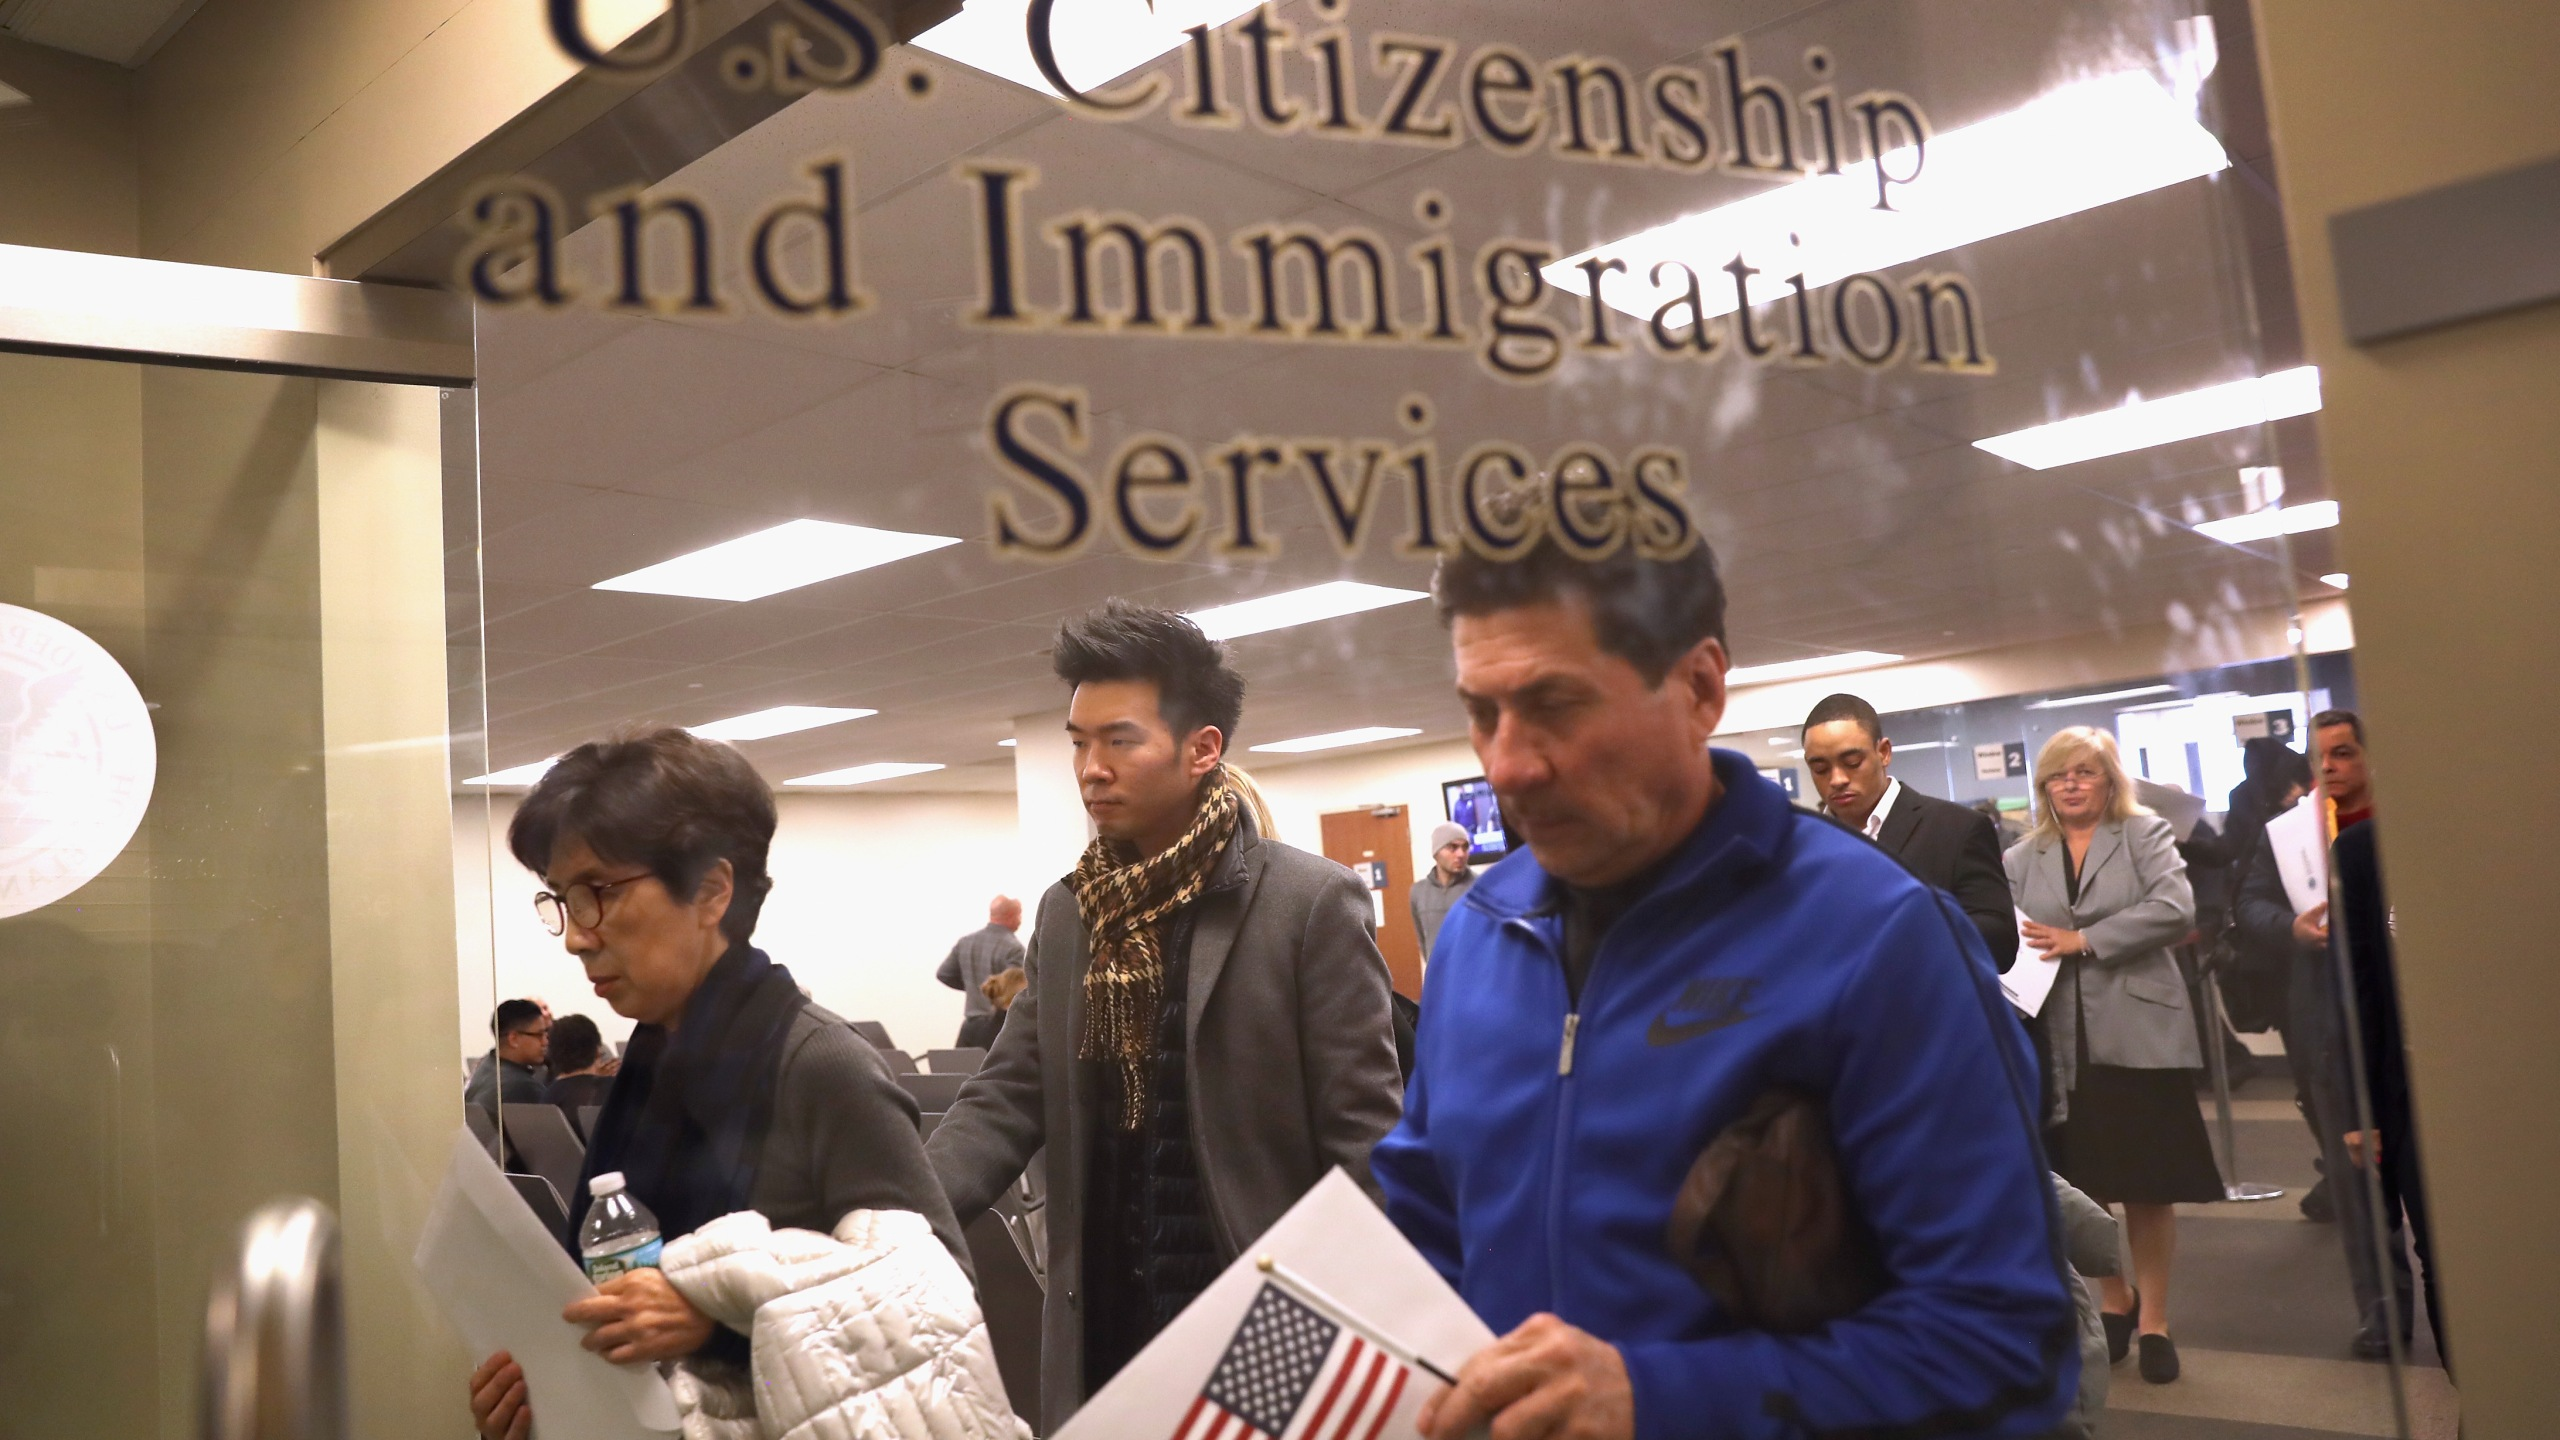 Immigrants prepare to become American citizens at a naturalization service on Jan. 22, 2018 in Newark, New Jersey. Although much of the federal government was shut down Monday morning, the U.S. Citizenship and Immigration Services offices remained open nationwide that day. (Credit: John Moore/Getty Images)